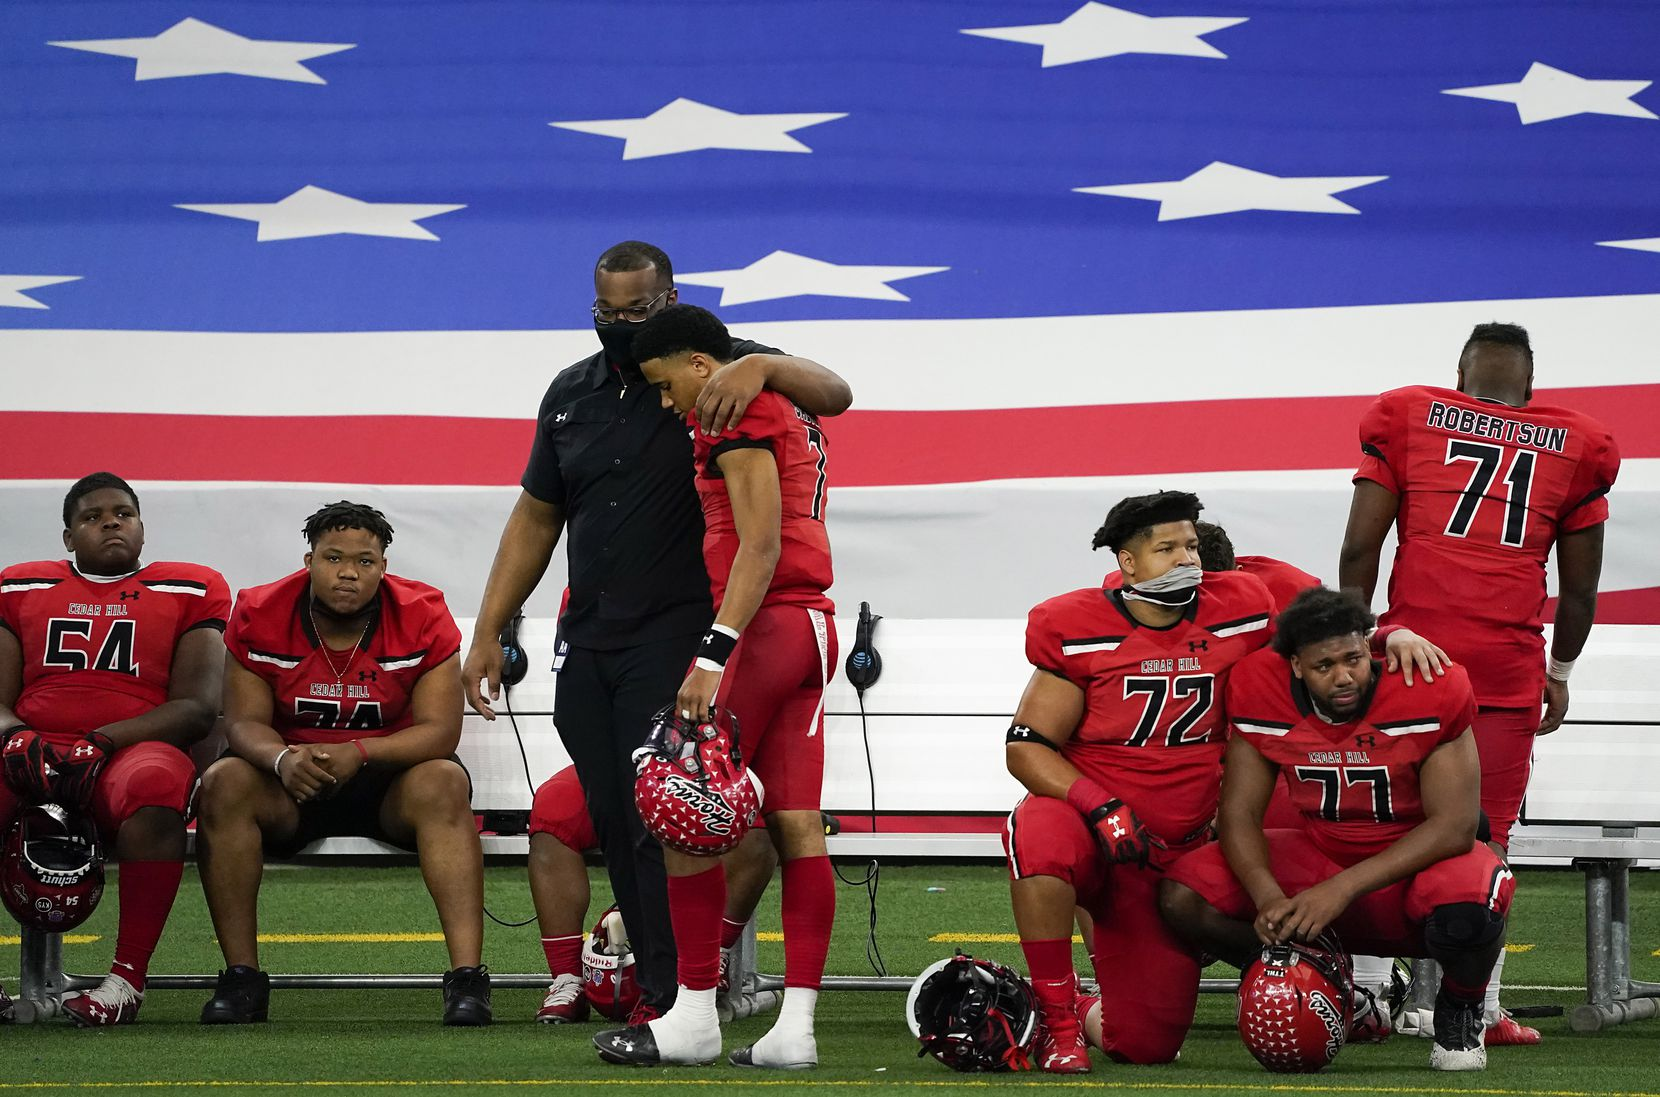 Cedar Hill quarterback Kaidon Salter (7) is consoled by a coach as teammates Matthew Worth (54), Carlos Peoples (74), Josiah Jefferson (72), Miquel Massey, Jr (77) and Ivan Narro (71) wait for the final moments to tick off the clock in a loss to Katy in the Class 6A Division II state football championship game at AT&T Stadium on Saturday, Jan. 16, 2021, in Arlington, Texas. Katy won the game 51-14.